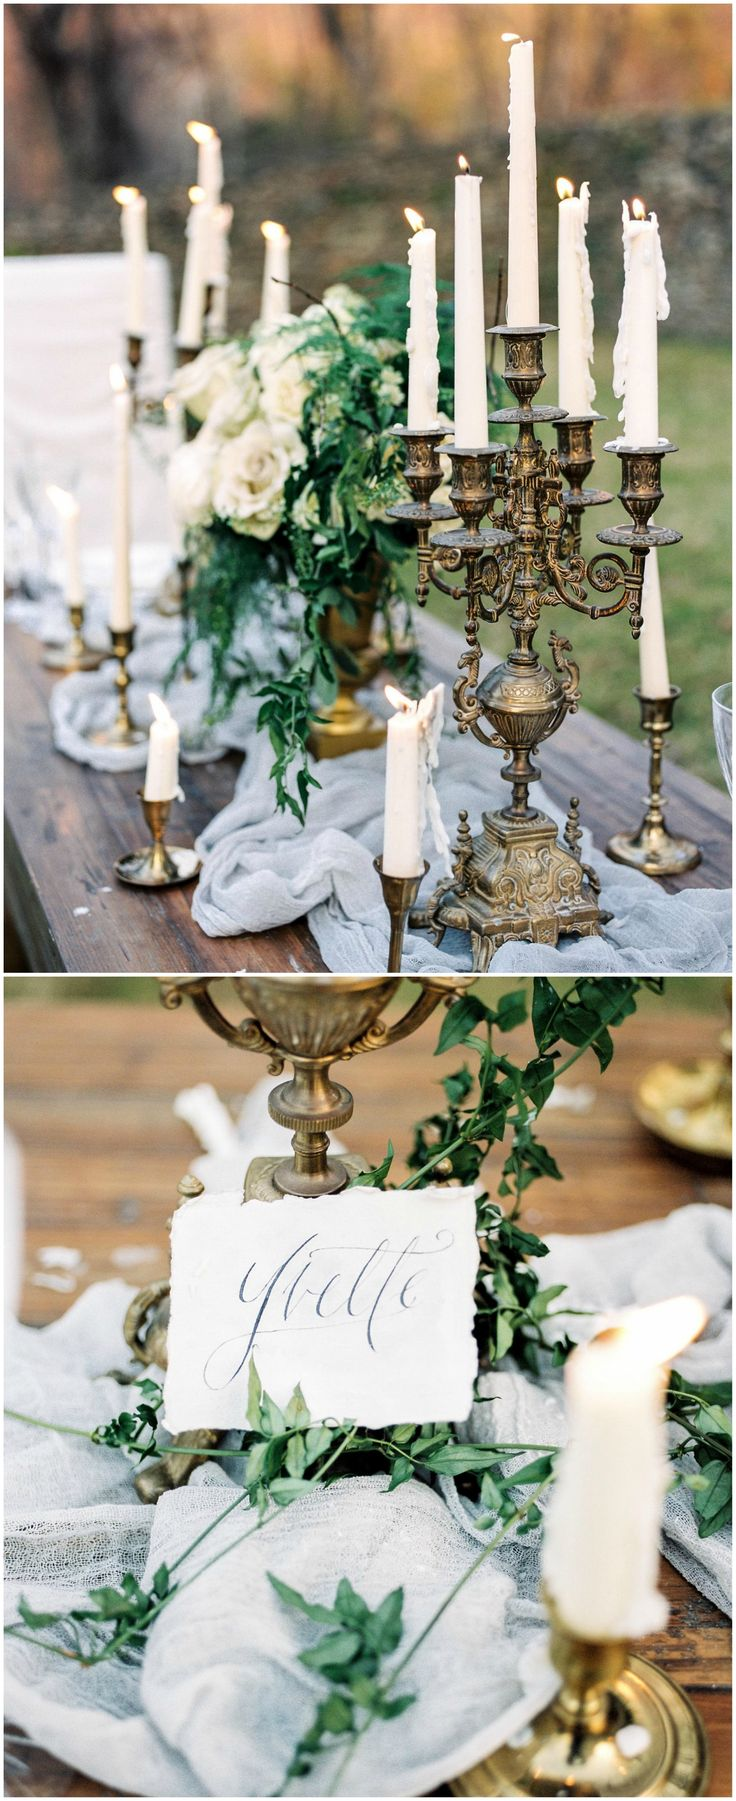 Wedding décor, farm table antique candelabras, gauzy blue runner, calligraphy, greenery // Lissa Ryan Photography